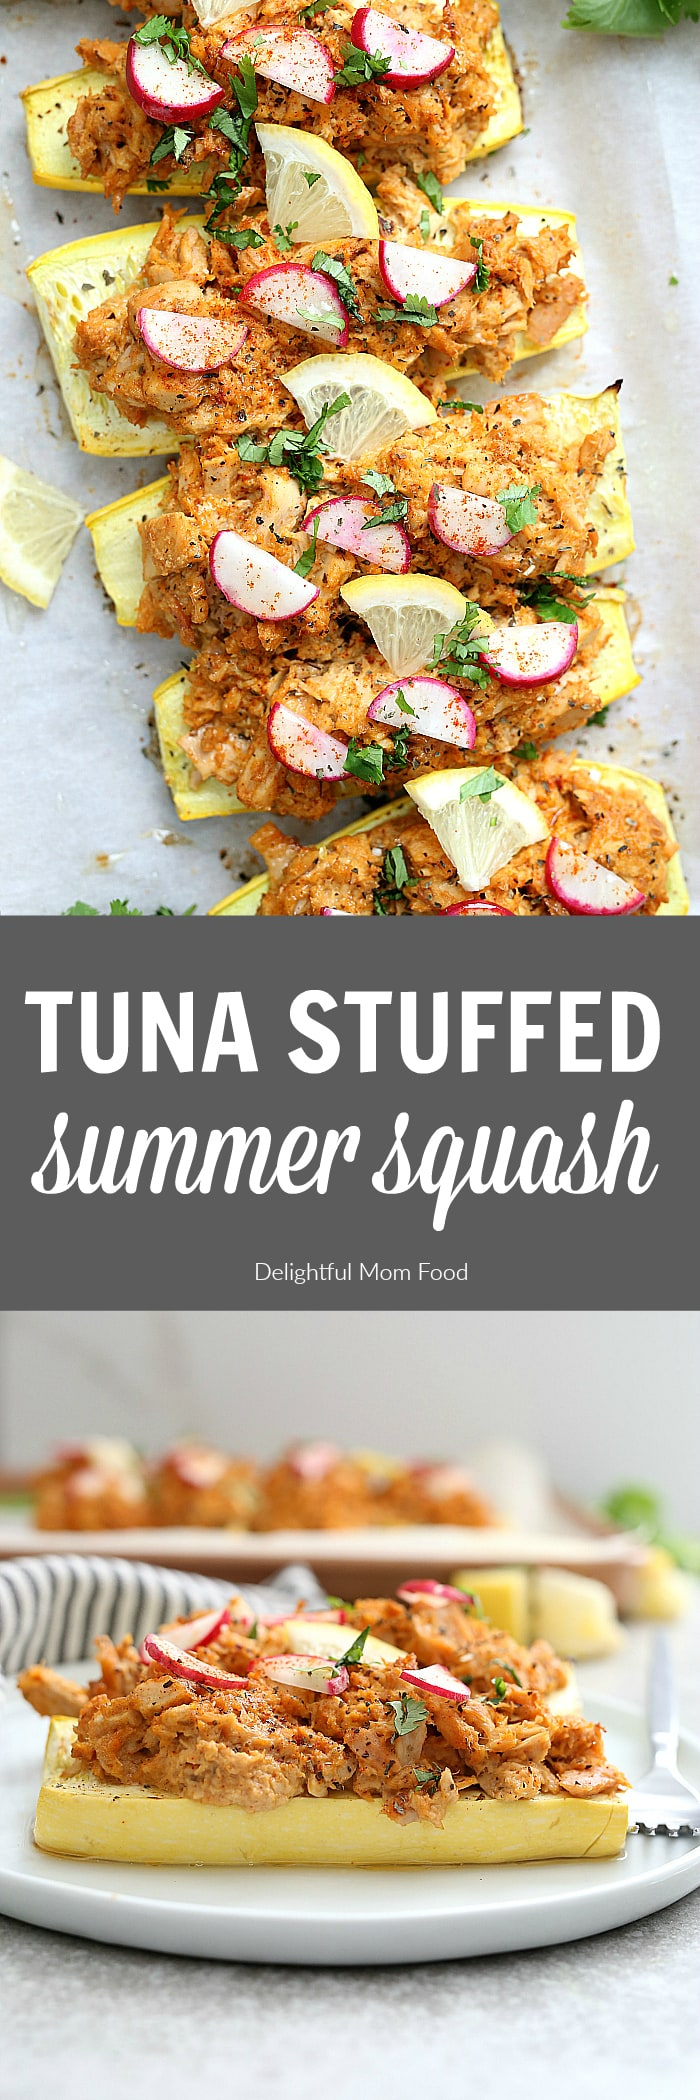 Tuna stuffed yellow summer squash is a delicious low-carb meal. Use a zucchini or a yellow courgette as the boat and bake it stuffed with this lightened-up yet filling tuna salad. #recipe #lowcarb #glutenfree #grainfree #tuna #stuffed #yellow #squash #healthy #easy | delightfulmomfood.com